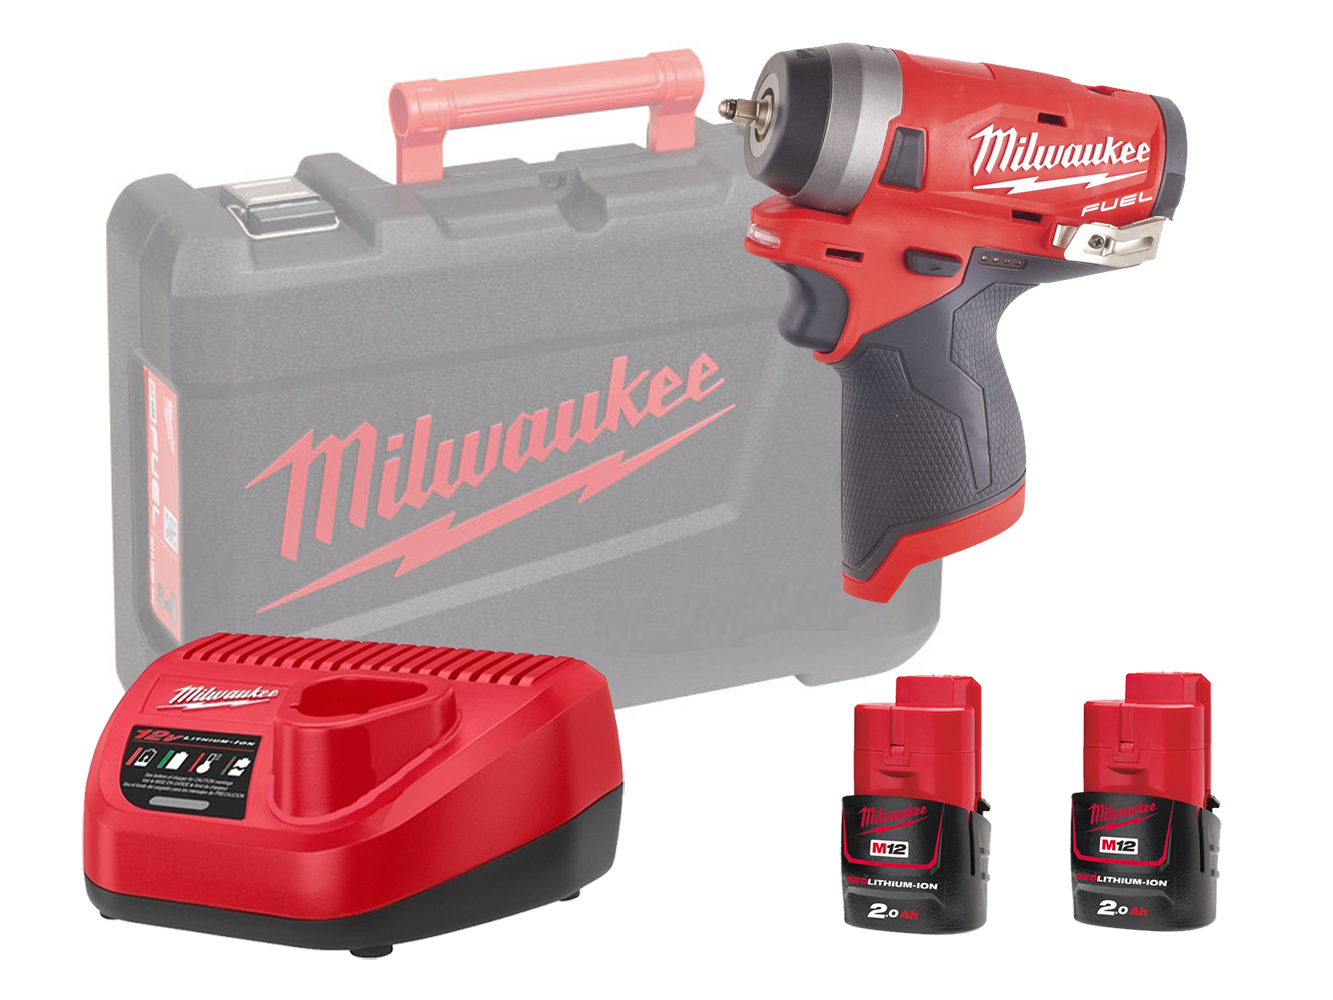 Milwaukee M12FIW14 12V Fuel Compact Impact Wrench 1/4In - 2.0Ah Pack